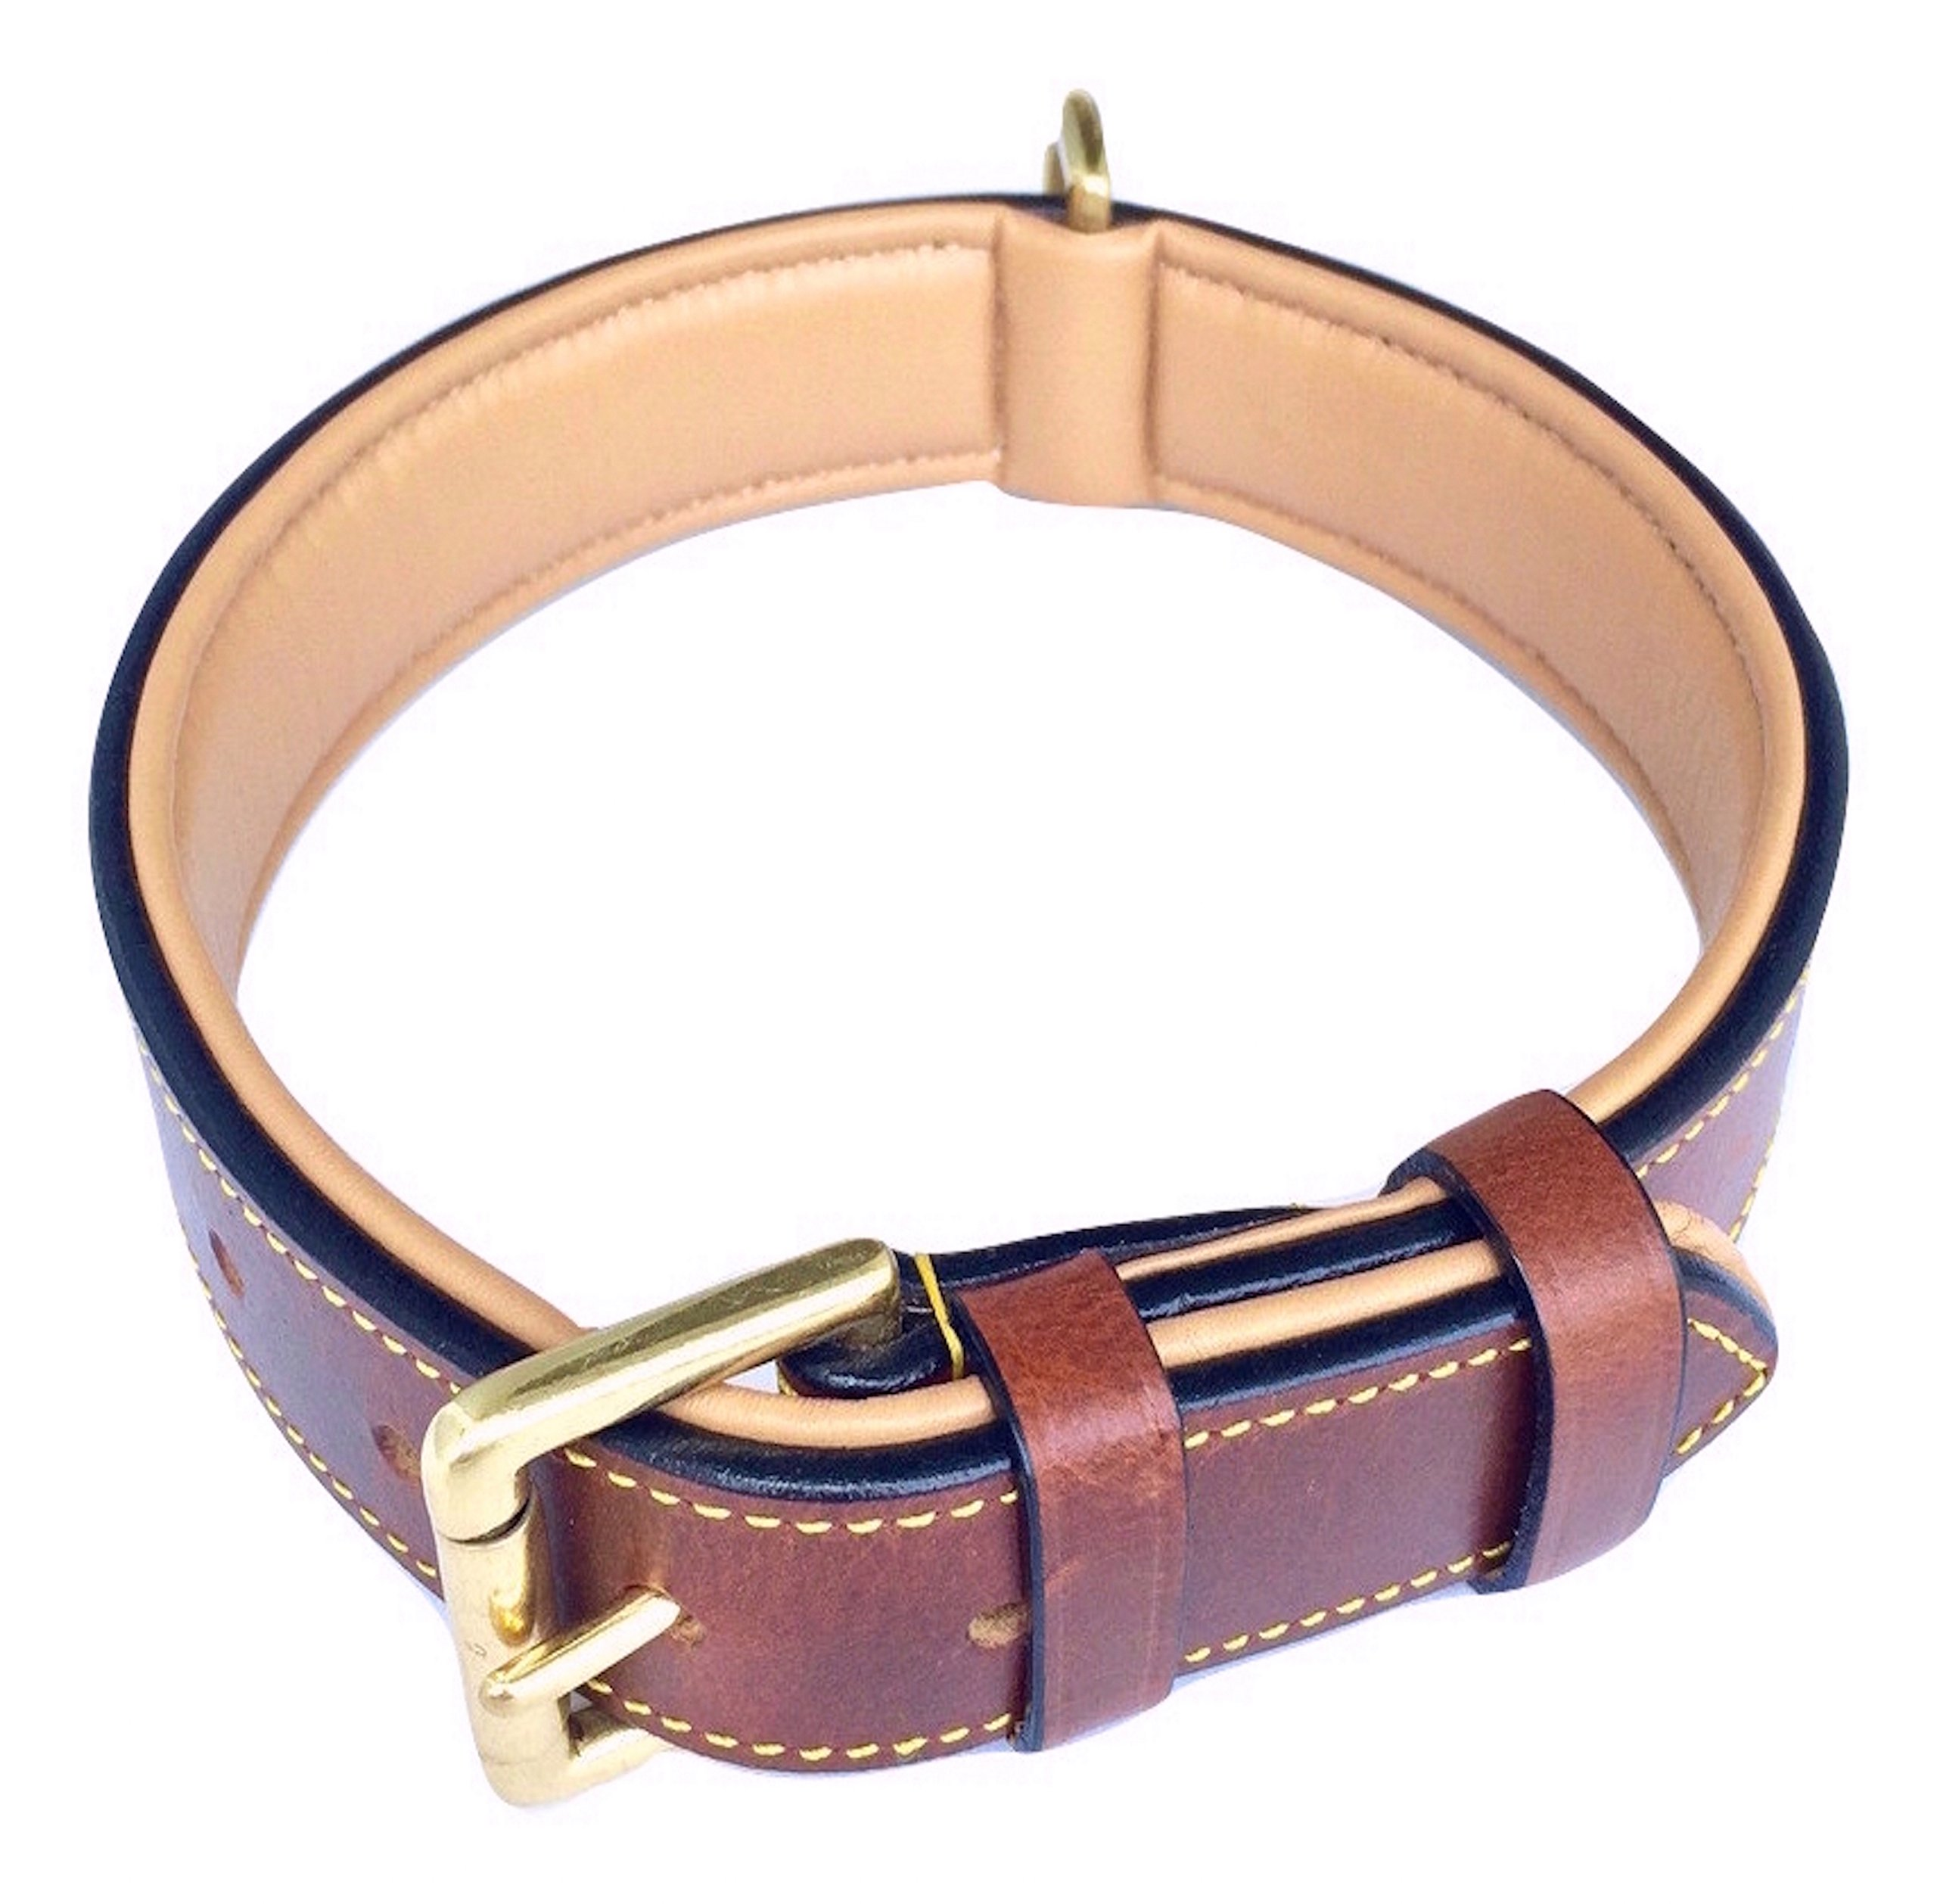 Soft Touch Collars - Luxury Real Leather Padded Dog Collar Brown Large